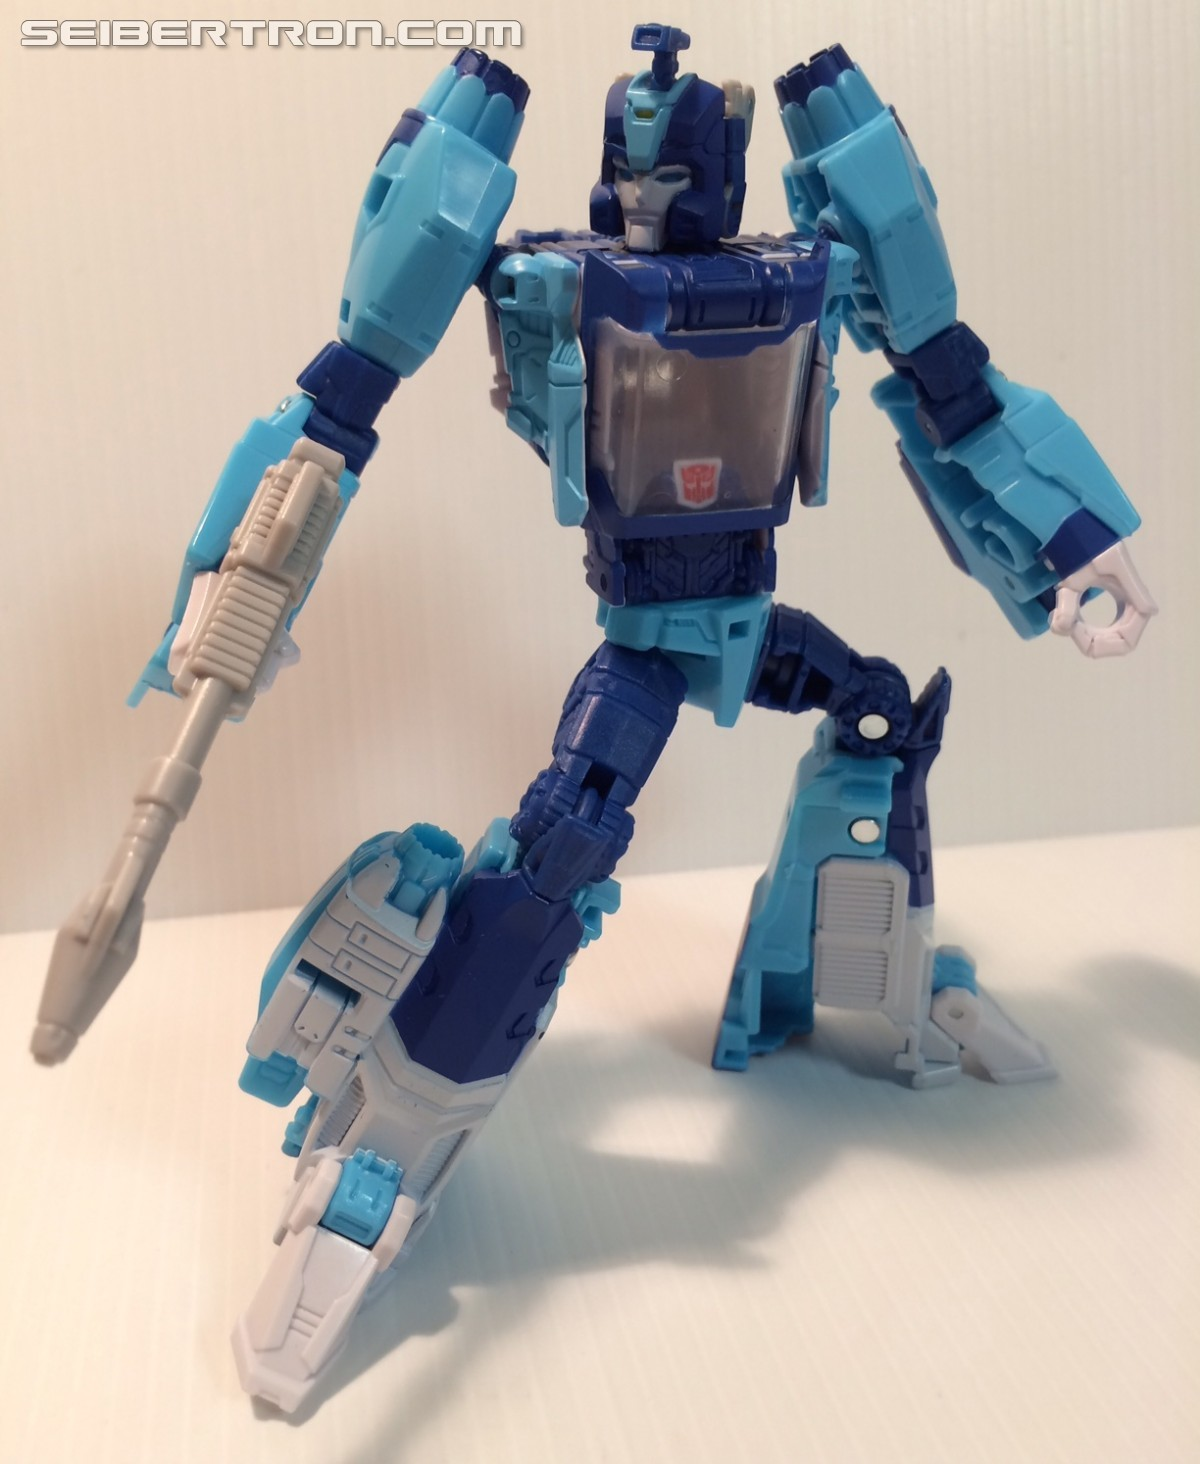 Transformers News: New In Hand Images of Takara Tomy Transformers Legends LG25 Blurr with Comic